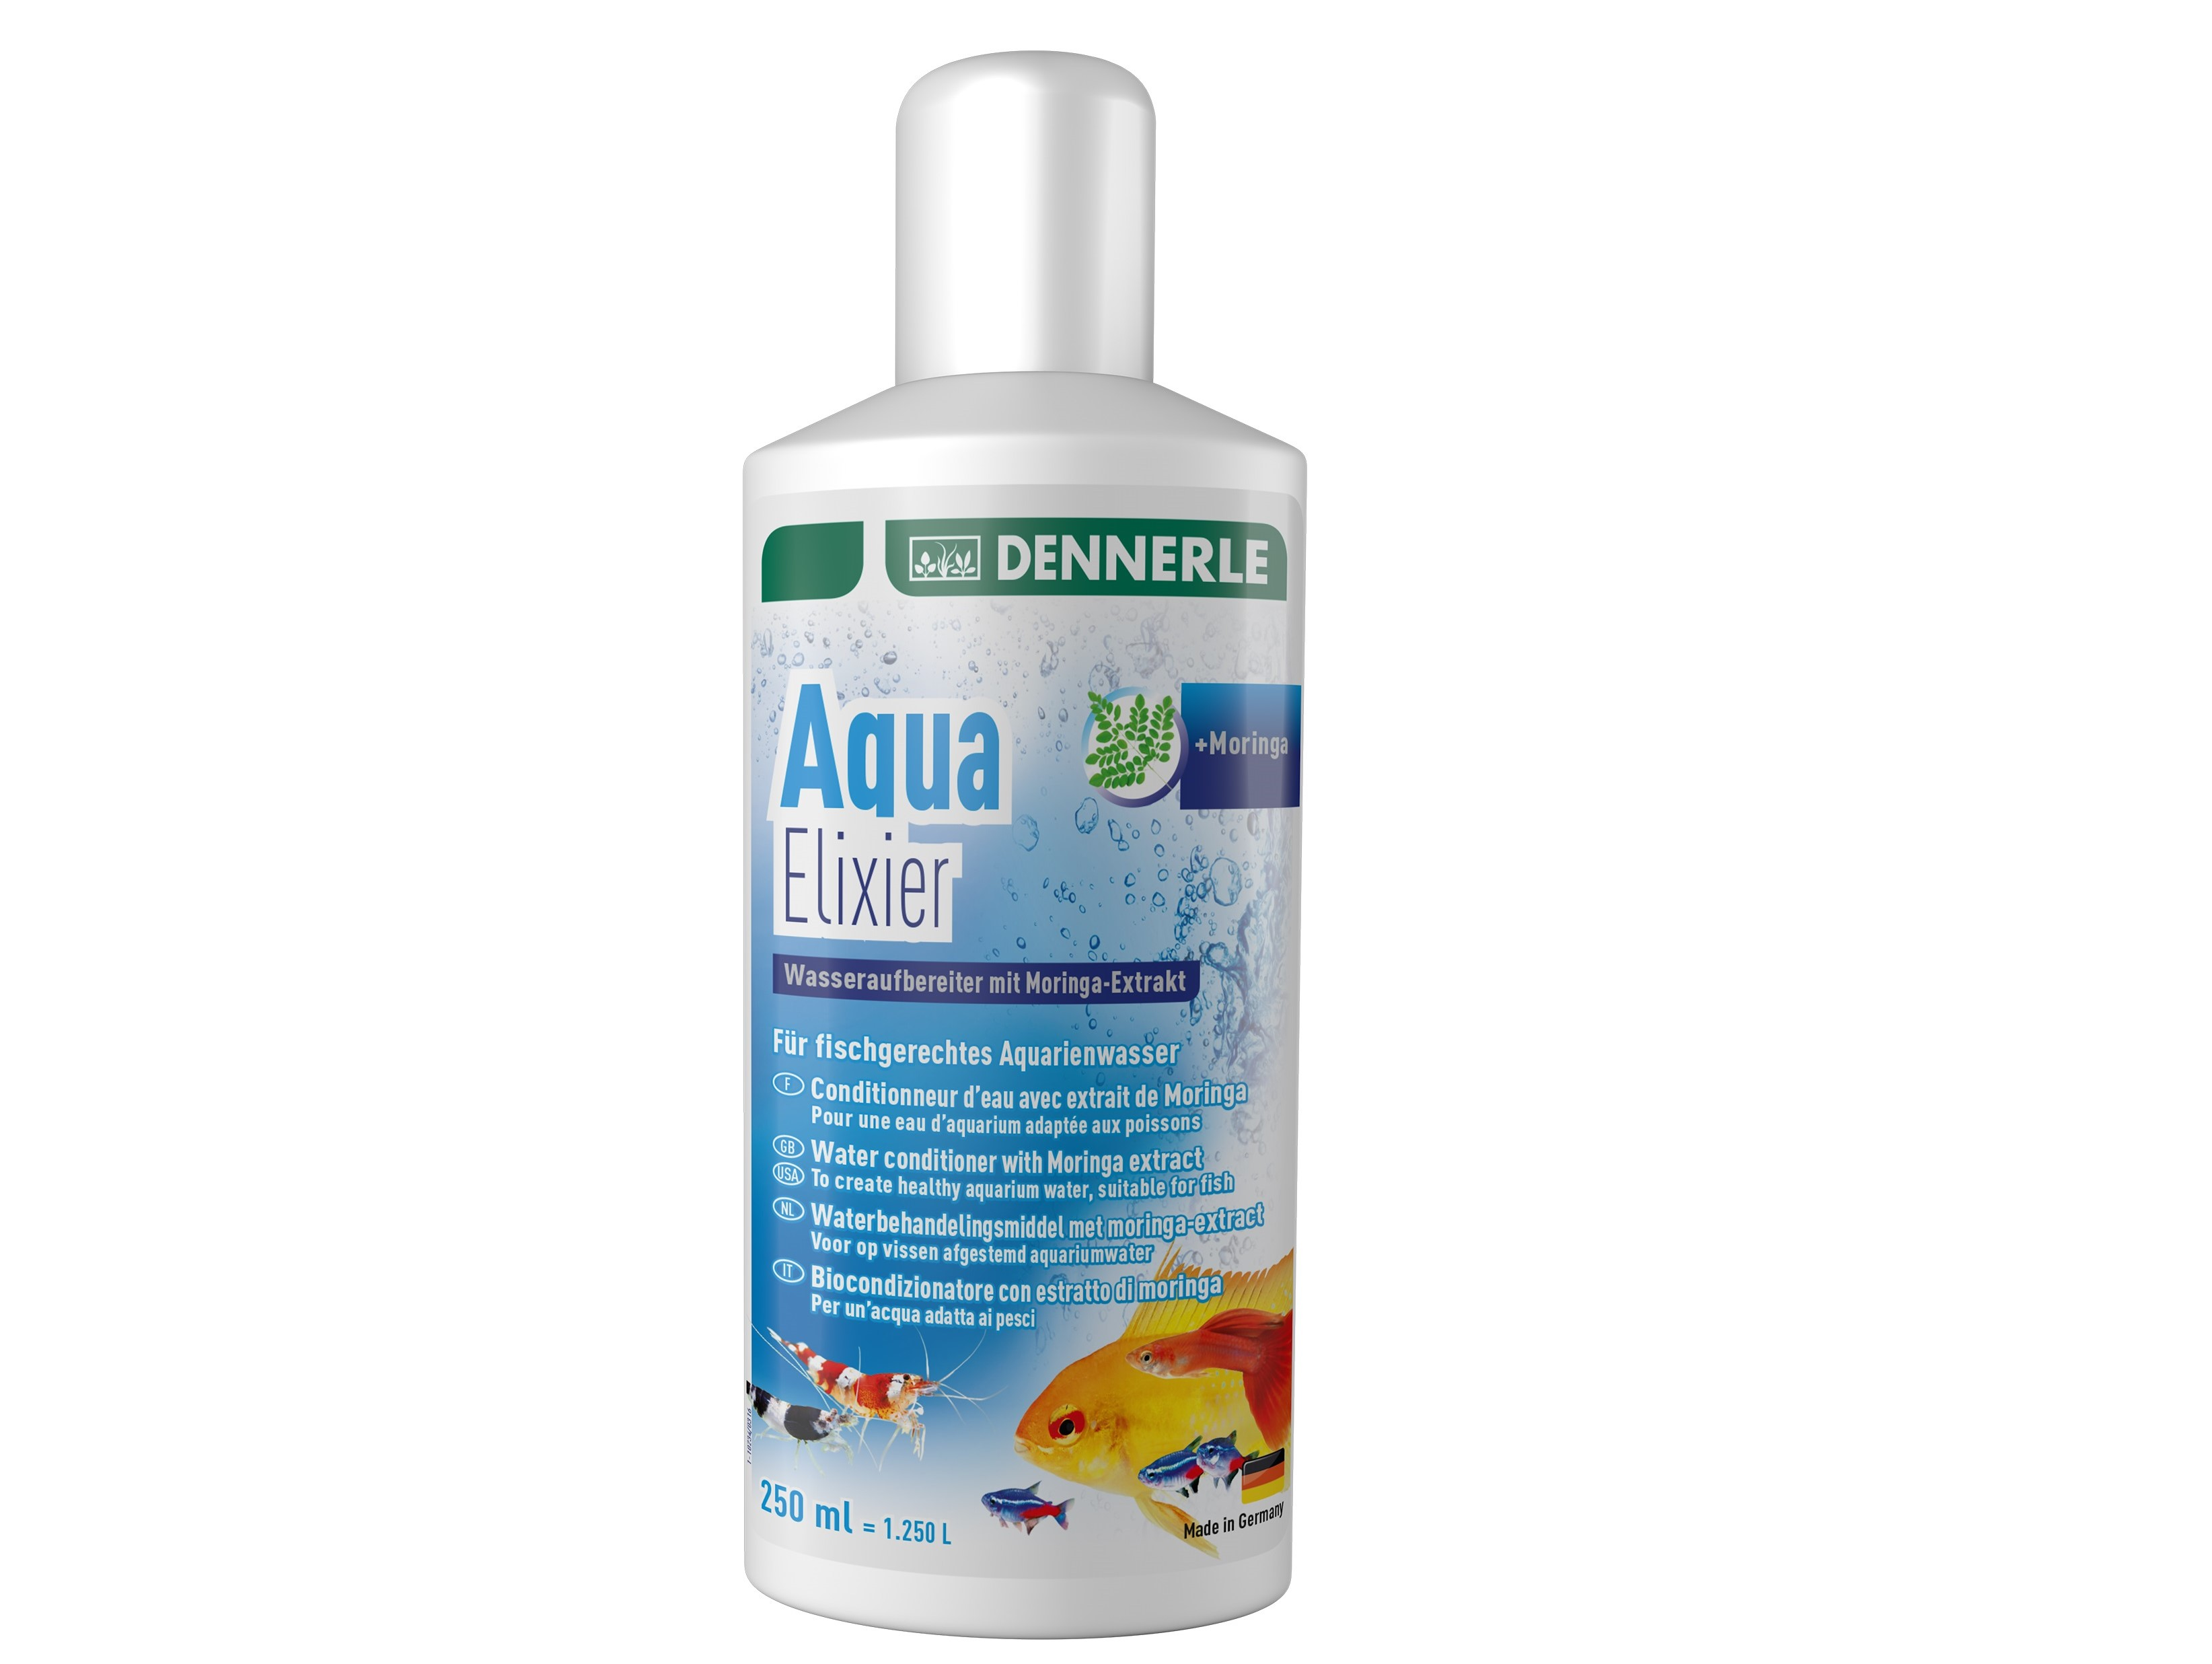 Conditioner general Dennerle Aqua Elixier 250ml pt 1250l